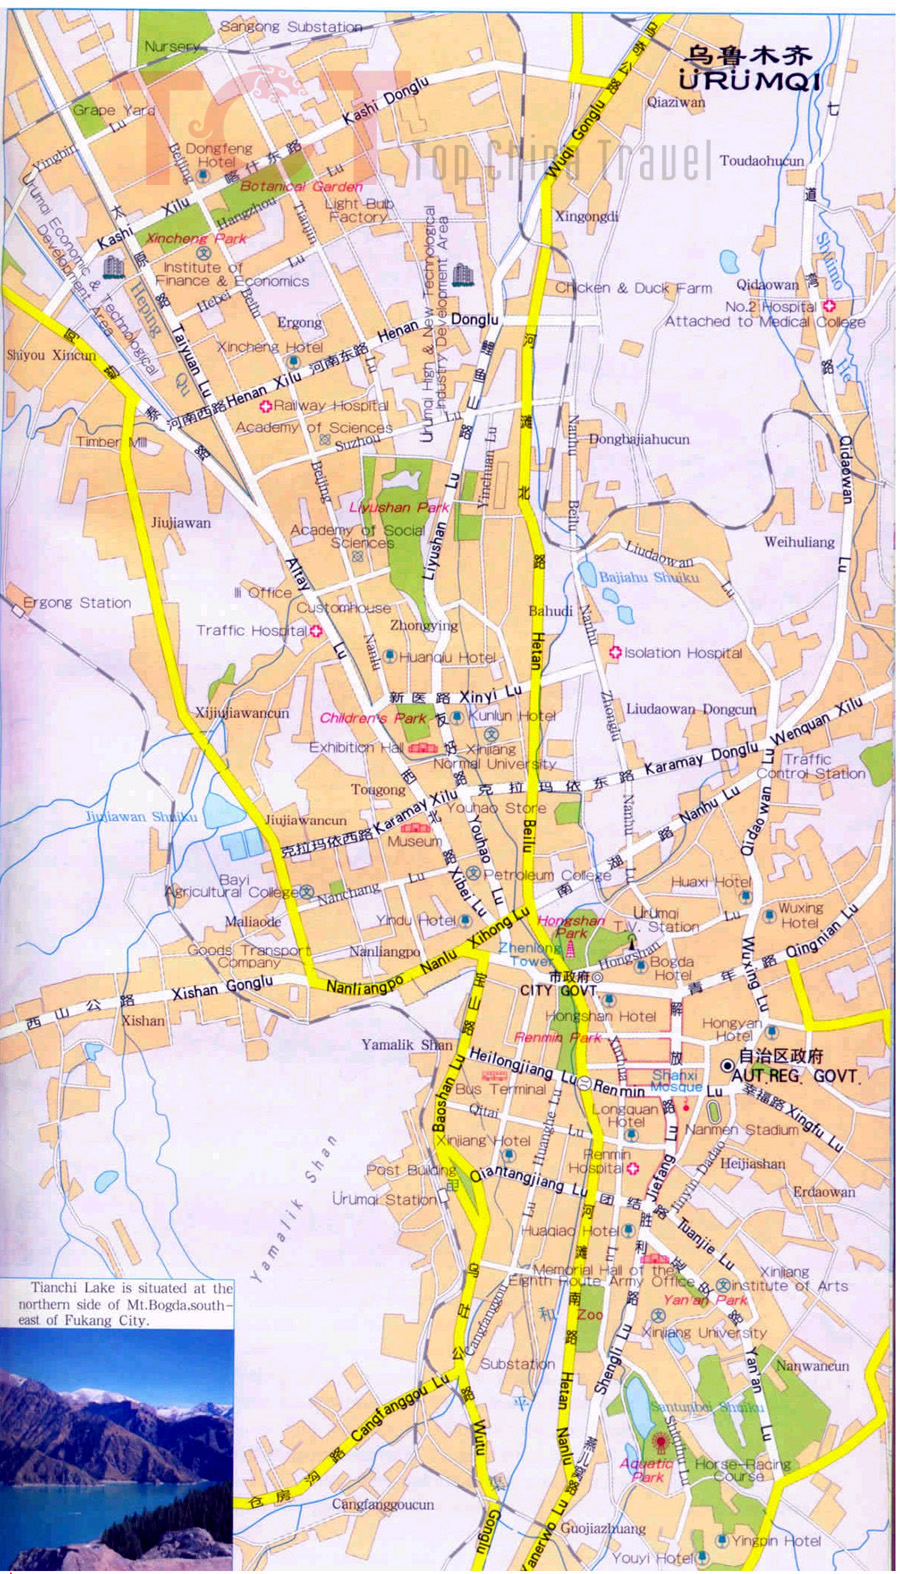 Map Xinjiang.Xinjiang Maps Map Of Xinjiang China Xinjiang Province Maps